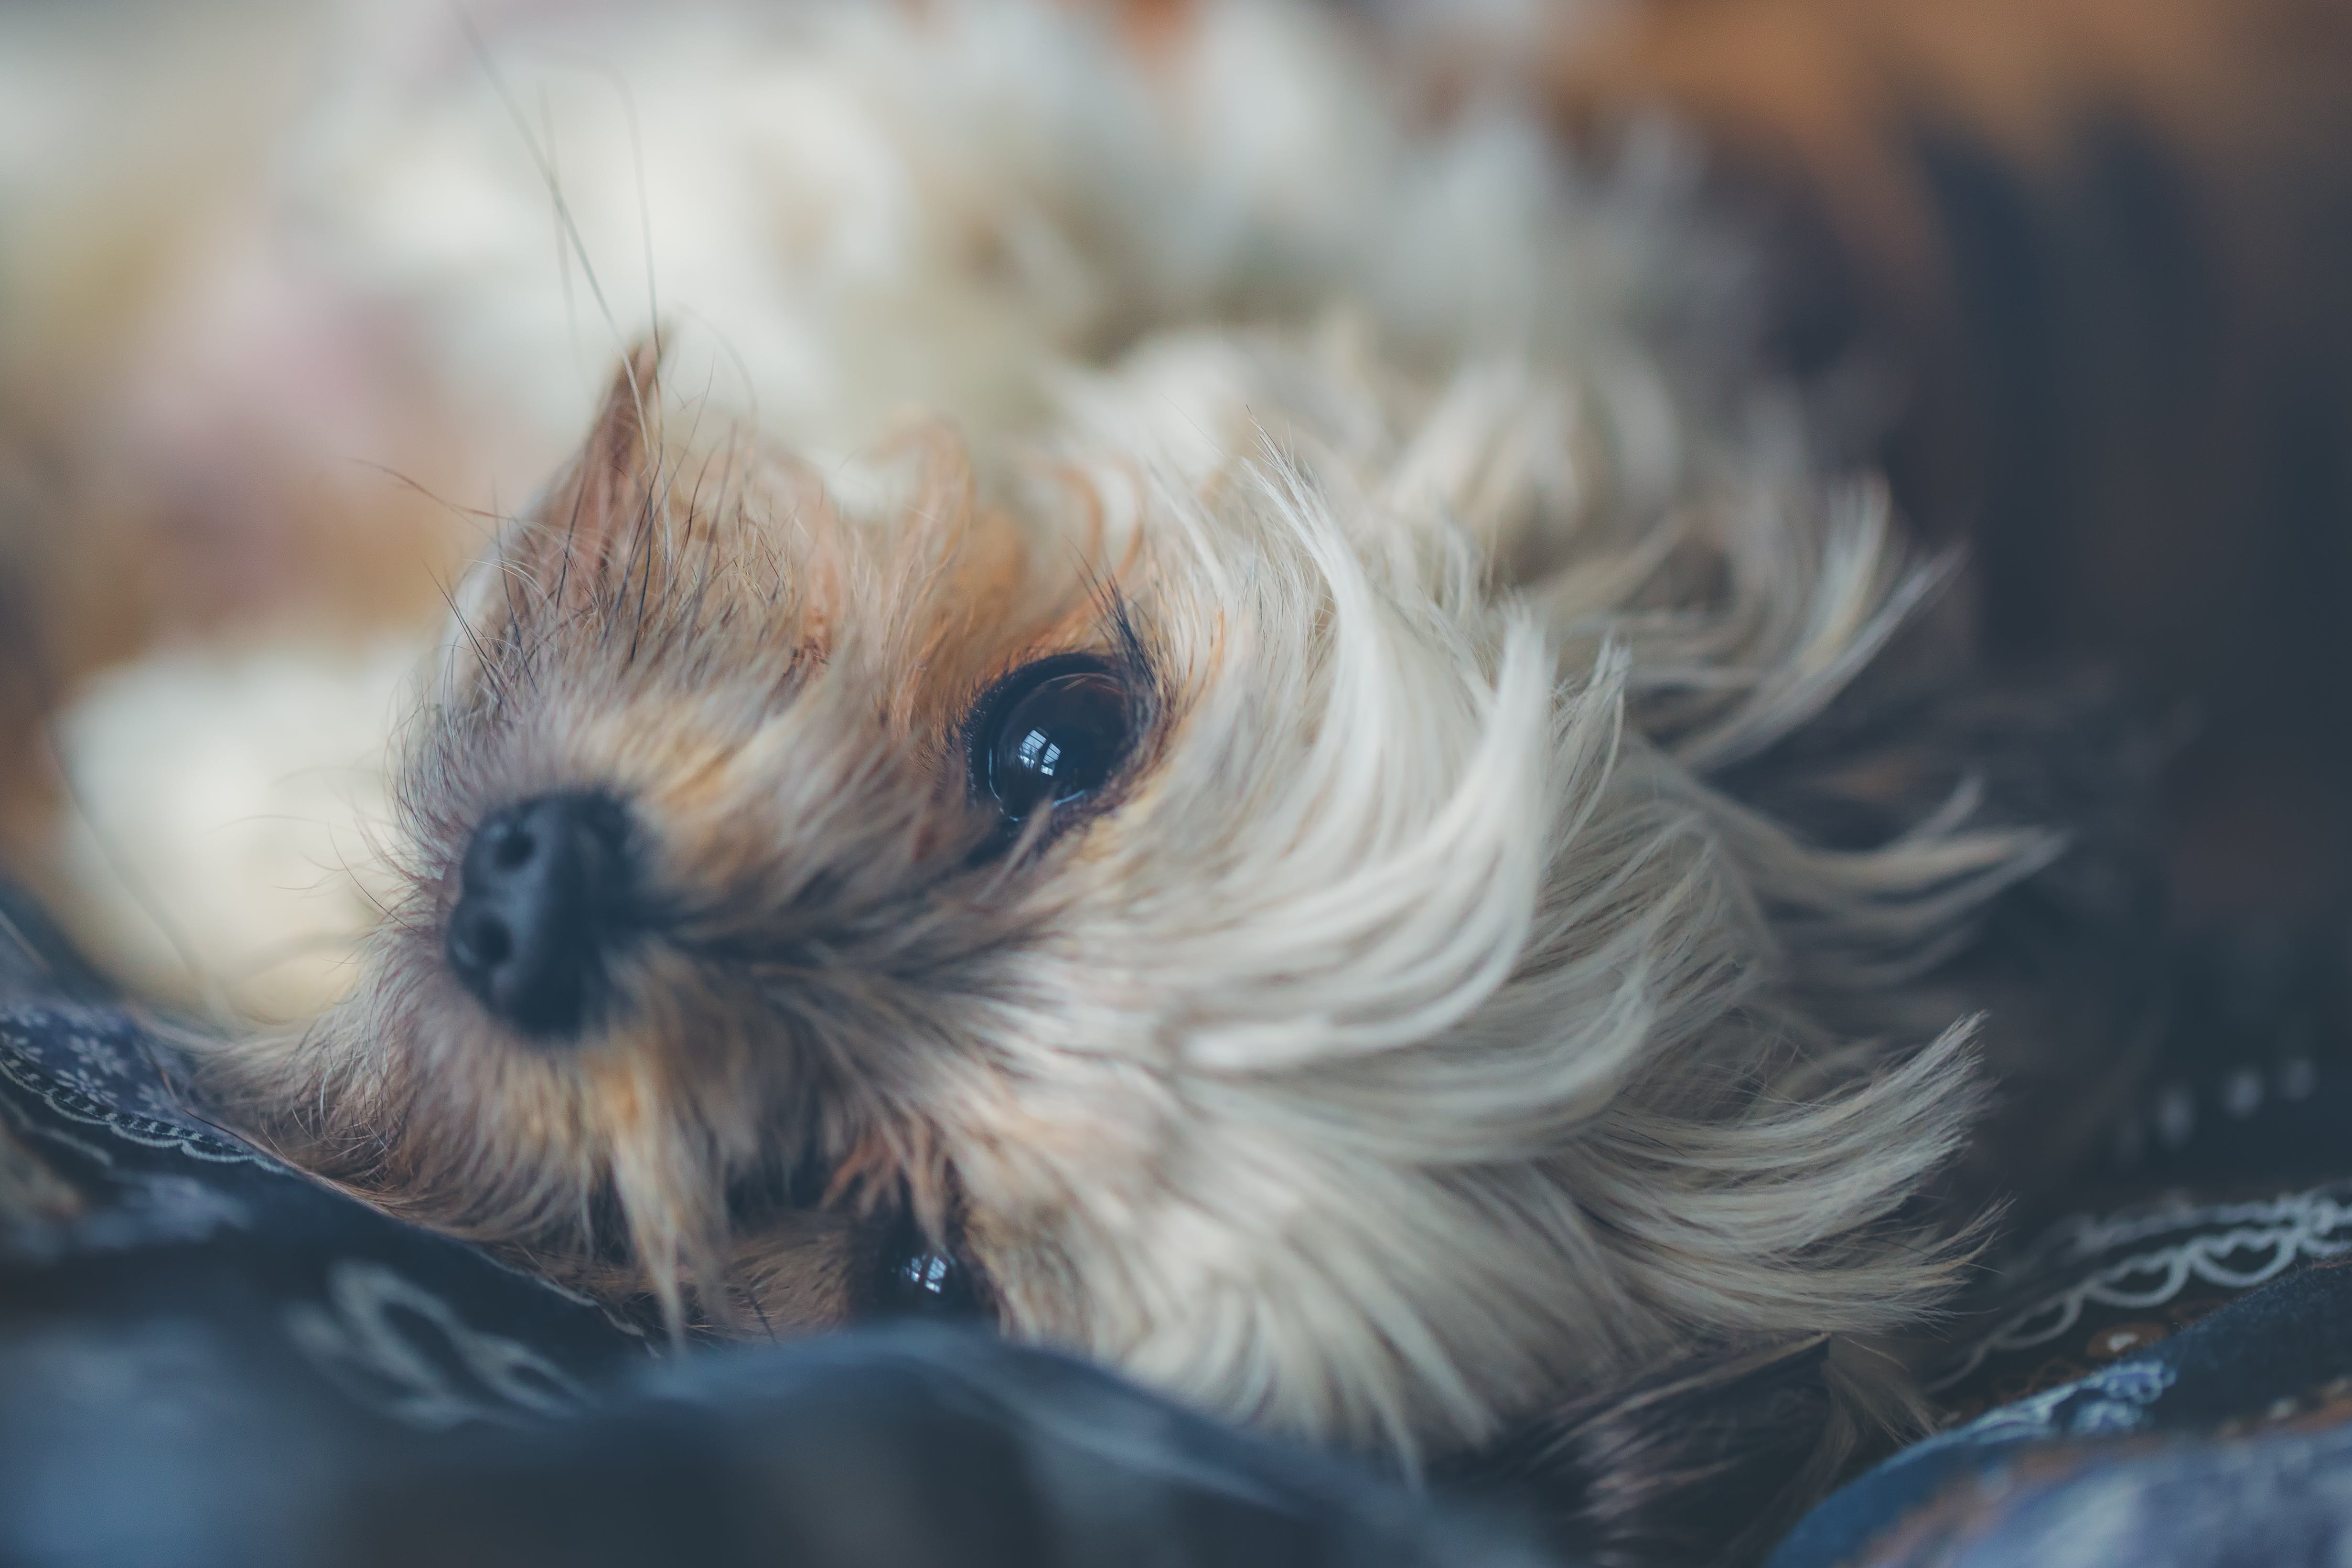 Brown and White Shih Tzu Lying on Ground Close-up Photo